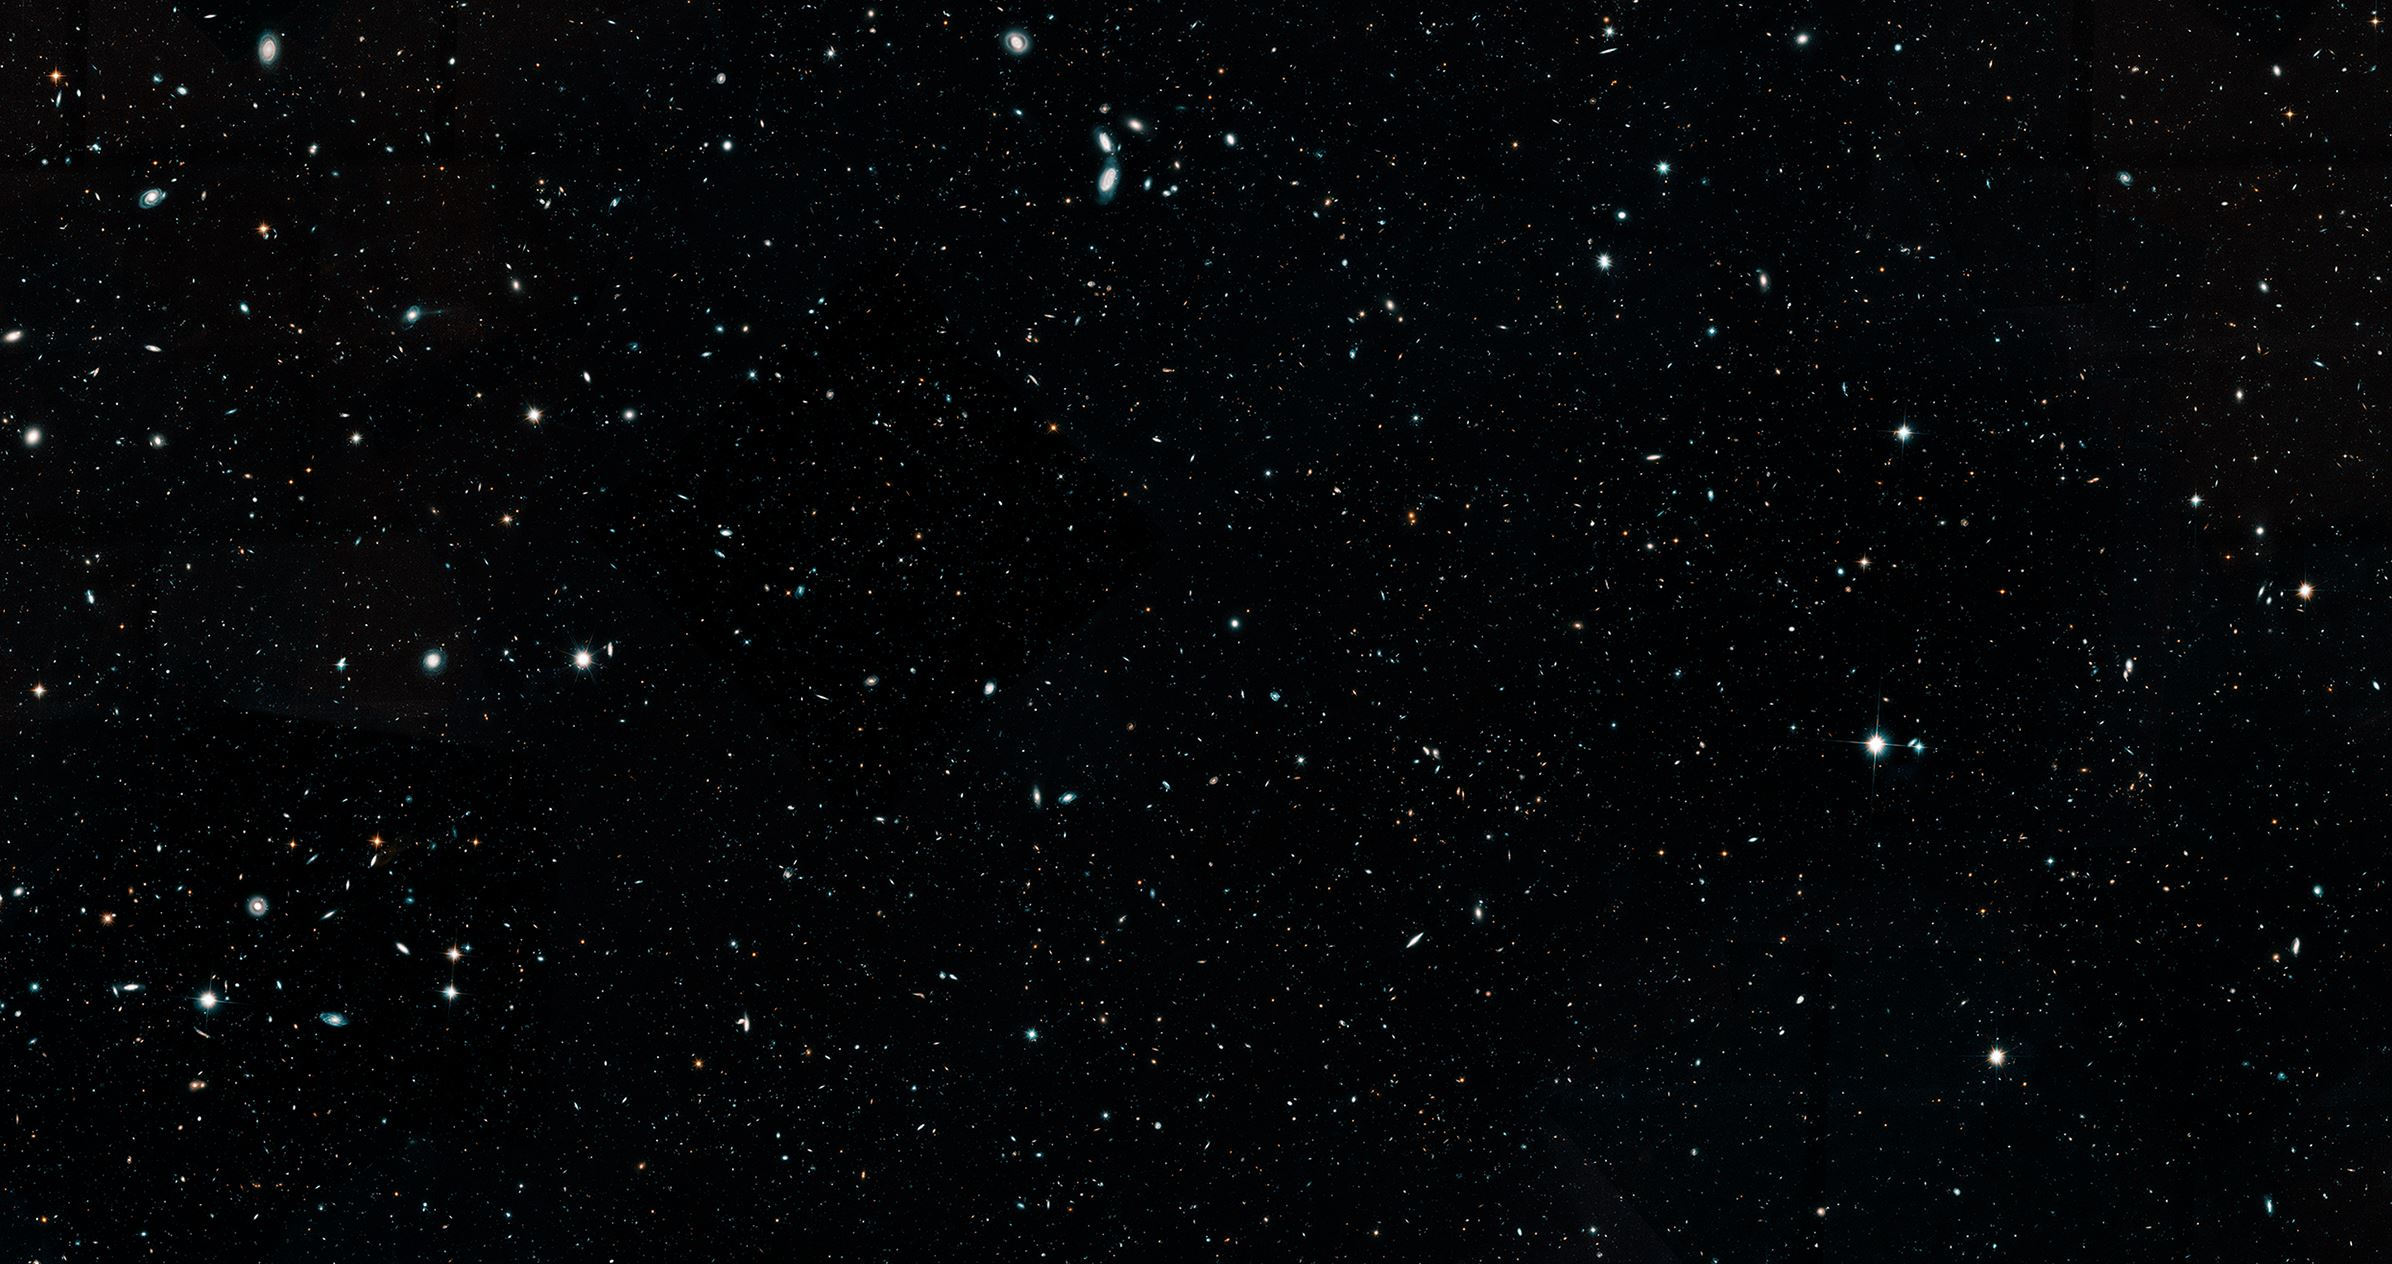 This Hubble Space Telescope image represents a portion of the Hubble Legacy Field, one of the widest views of the universe ever made. The image, a combination of thousands of snapshots, represents 16 years' worth of observations. The Hubble Legacy Field includes observations taken by several Hubble deep-field surveys, including the eXtreme Deep Field (XDF), the deepest view of the universe. The wavelength range stretches from ultraviolet to near-infrared light, capturing all the features of galaxy assembly over time. This cropped image mosaic presents a wide portrait of the distant universe and contains roughly 200,000 galaxies. They stretch back through 13.3 billion years of time to just 500 million years after the universe's birth in the big bang. - Image Credits: NASA, ESA, G. Illingworth and D. Magee (University of California, Santa Cruz), K. Whitaker (University of Connecticut), R. Bouwens (Leiden University), P. Oesch (University of Geneva) and the Hubble Legacy Field team